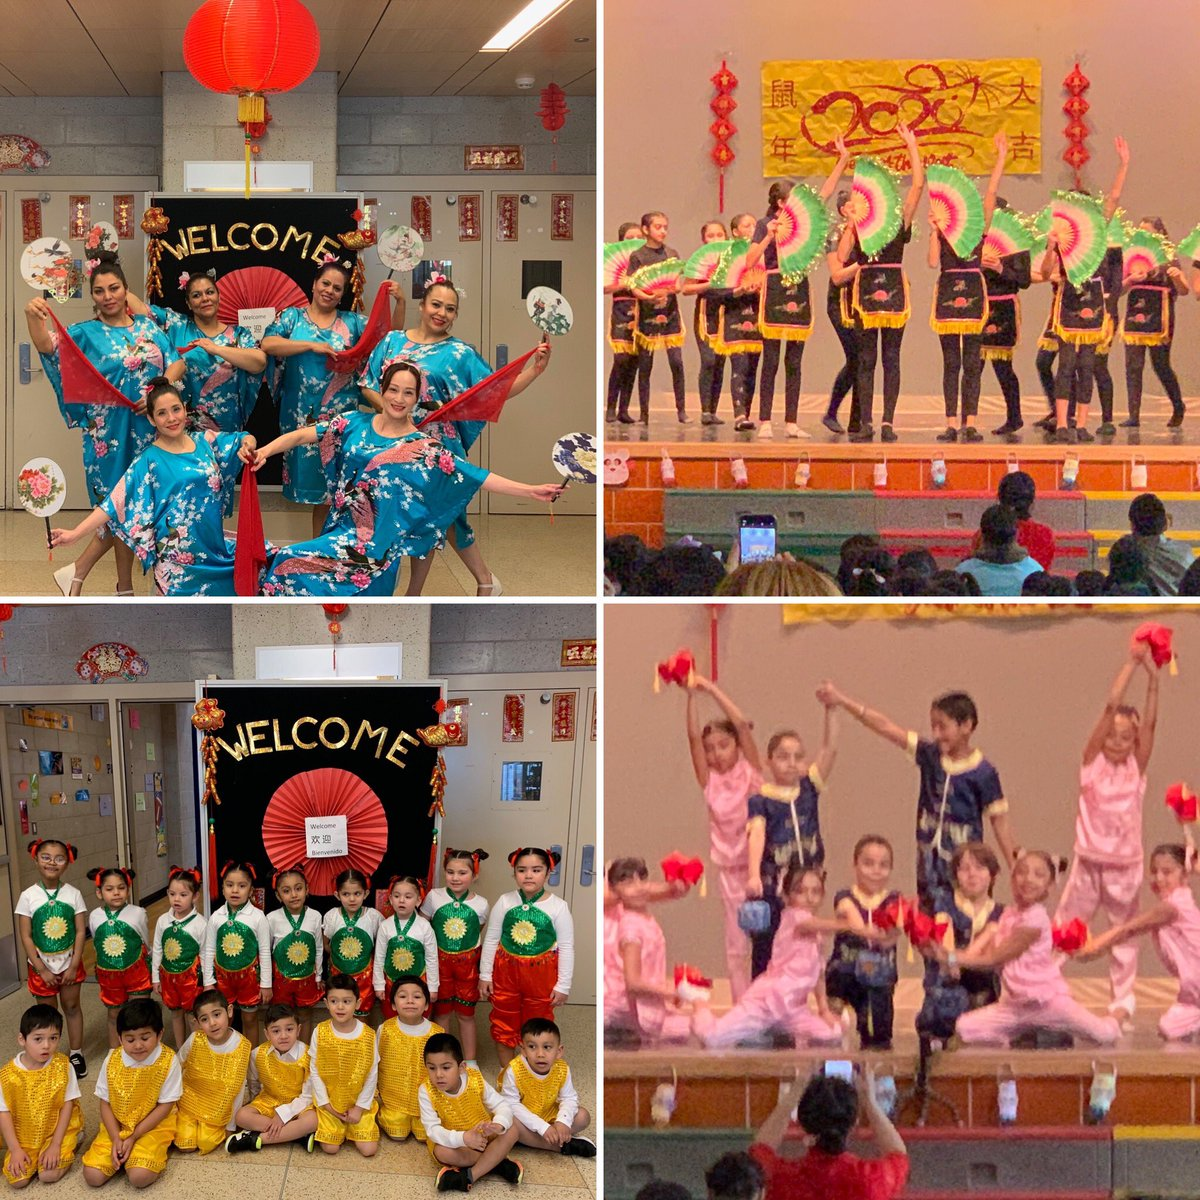 What a wonderful way to celebrate 2020 Chinese New Year! @CalmecaAcademy1 knows how to put on a show! @aldcardenaspic.twitter.com/qIKdxCocng